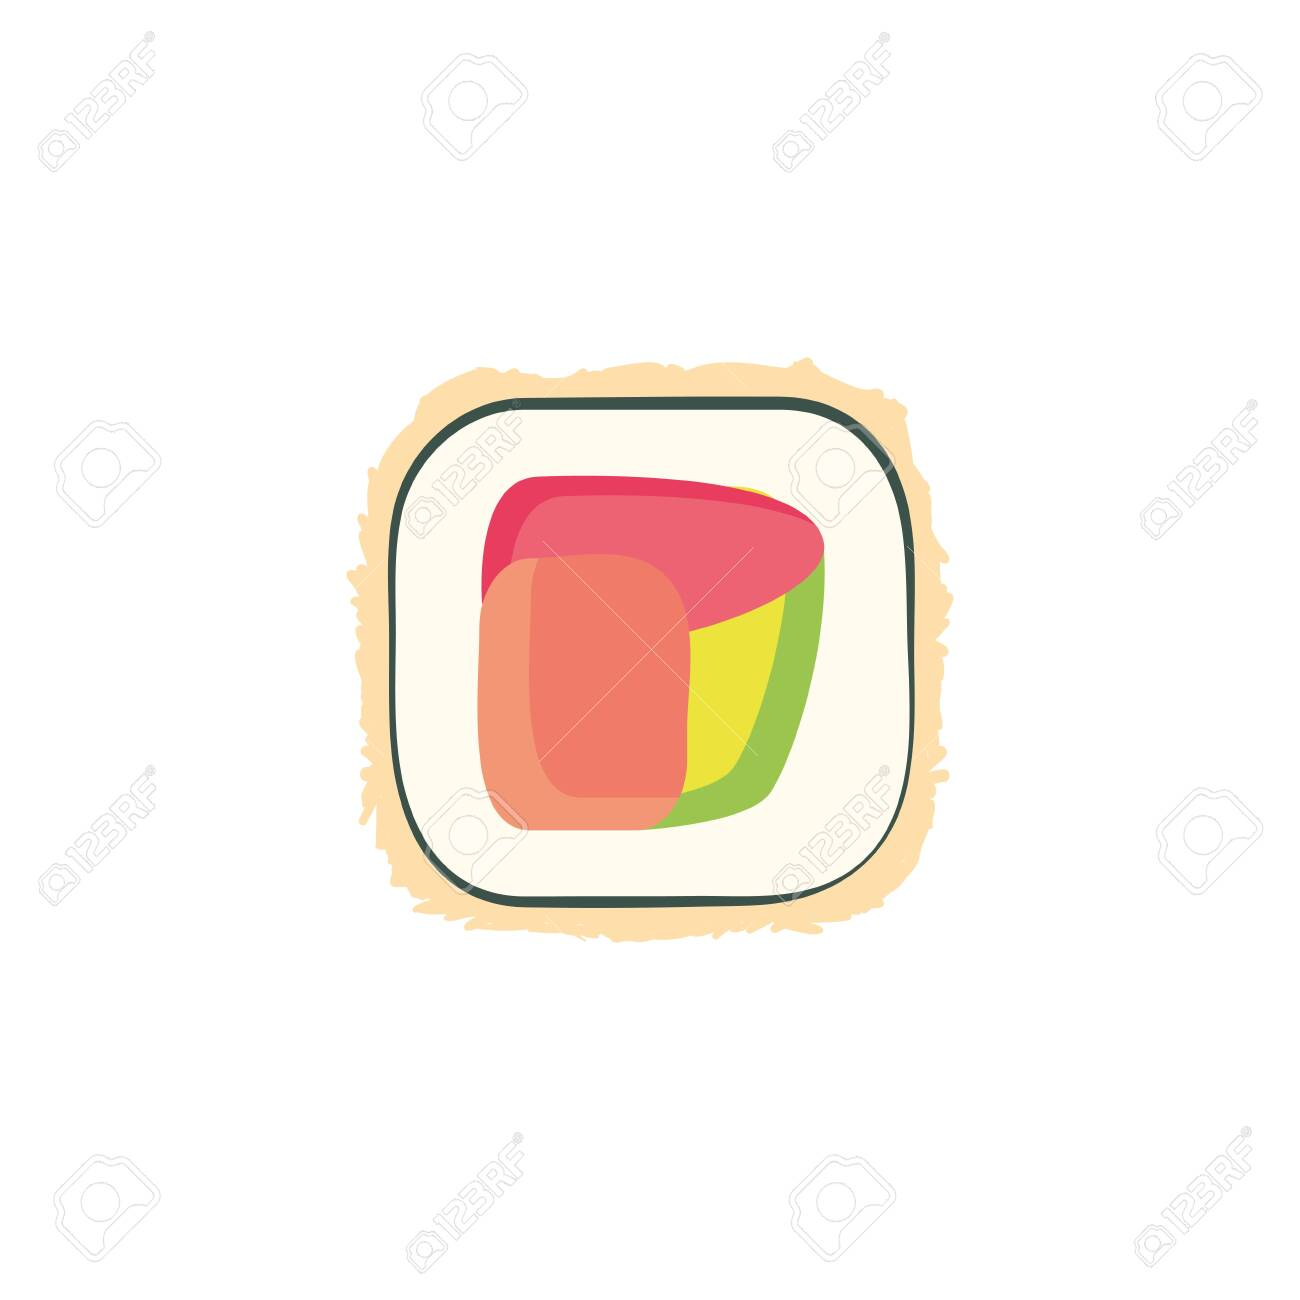 sushi icon design, Eat food restaurant menu dinner lunch cooking and meal theme Vector illustration - 144662818